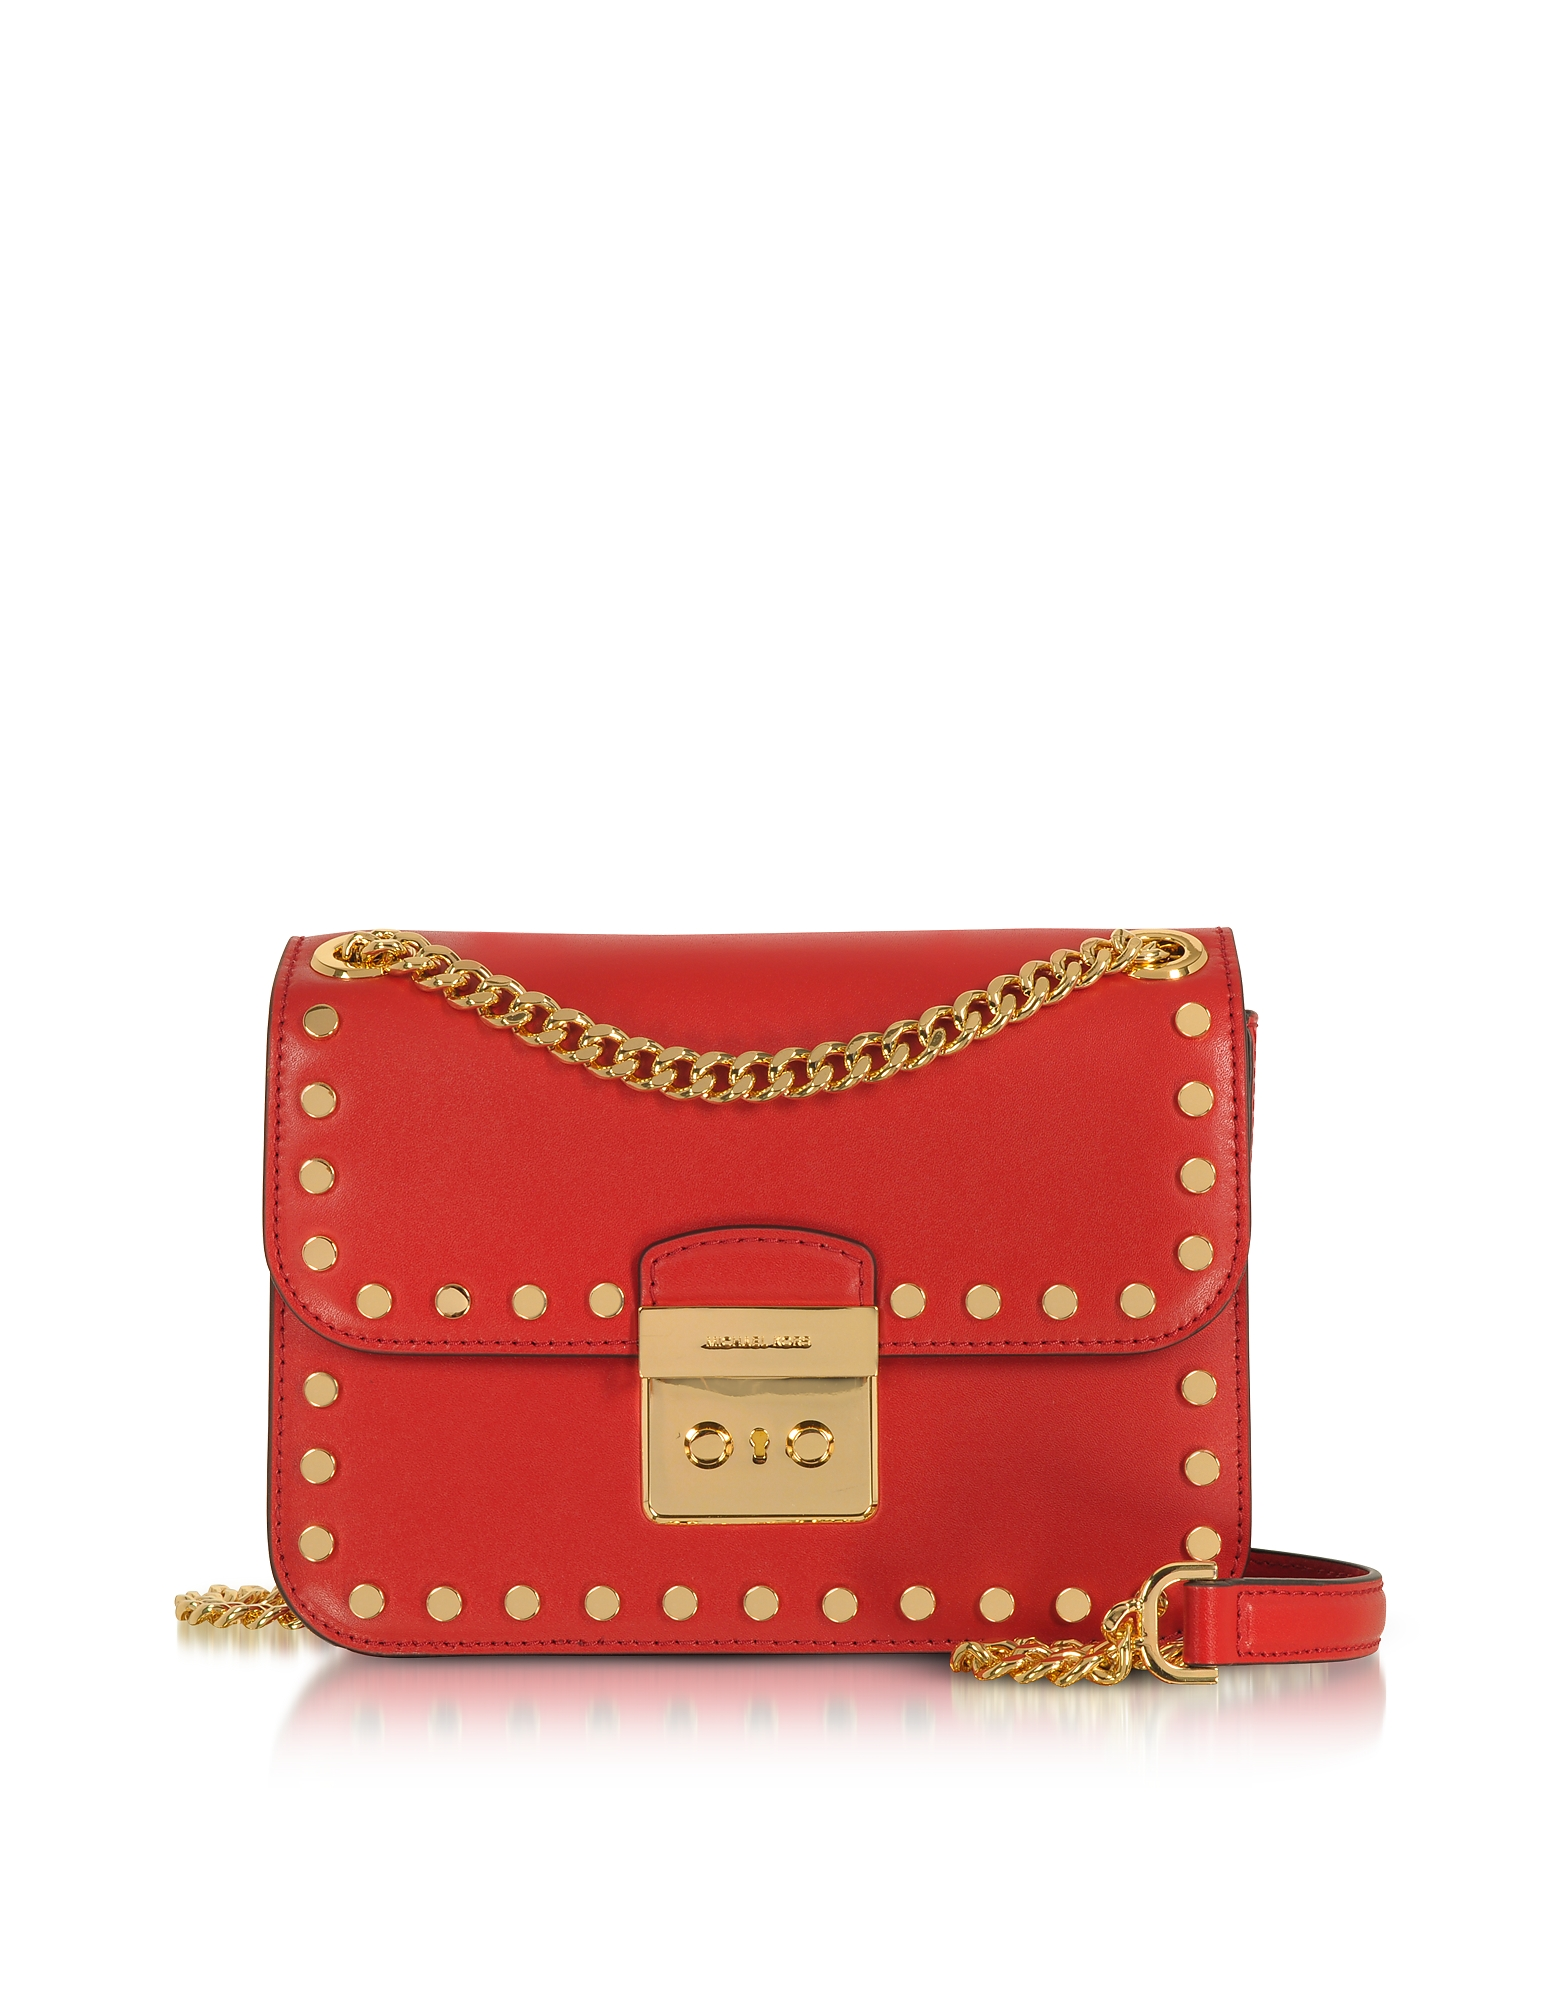 Michael Kors Handbags, Sloan Editor Medium Bright Red Leather Chain Shoulder Bag